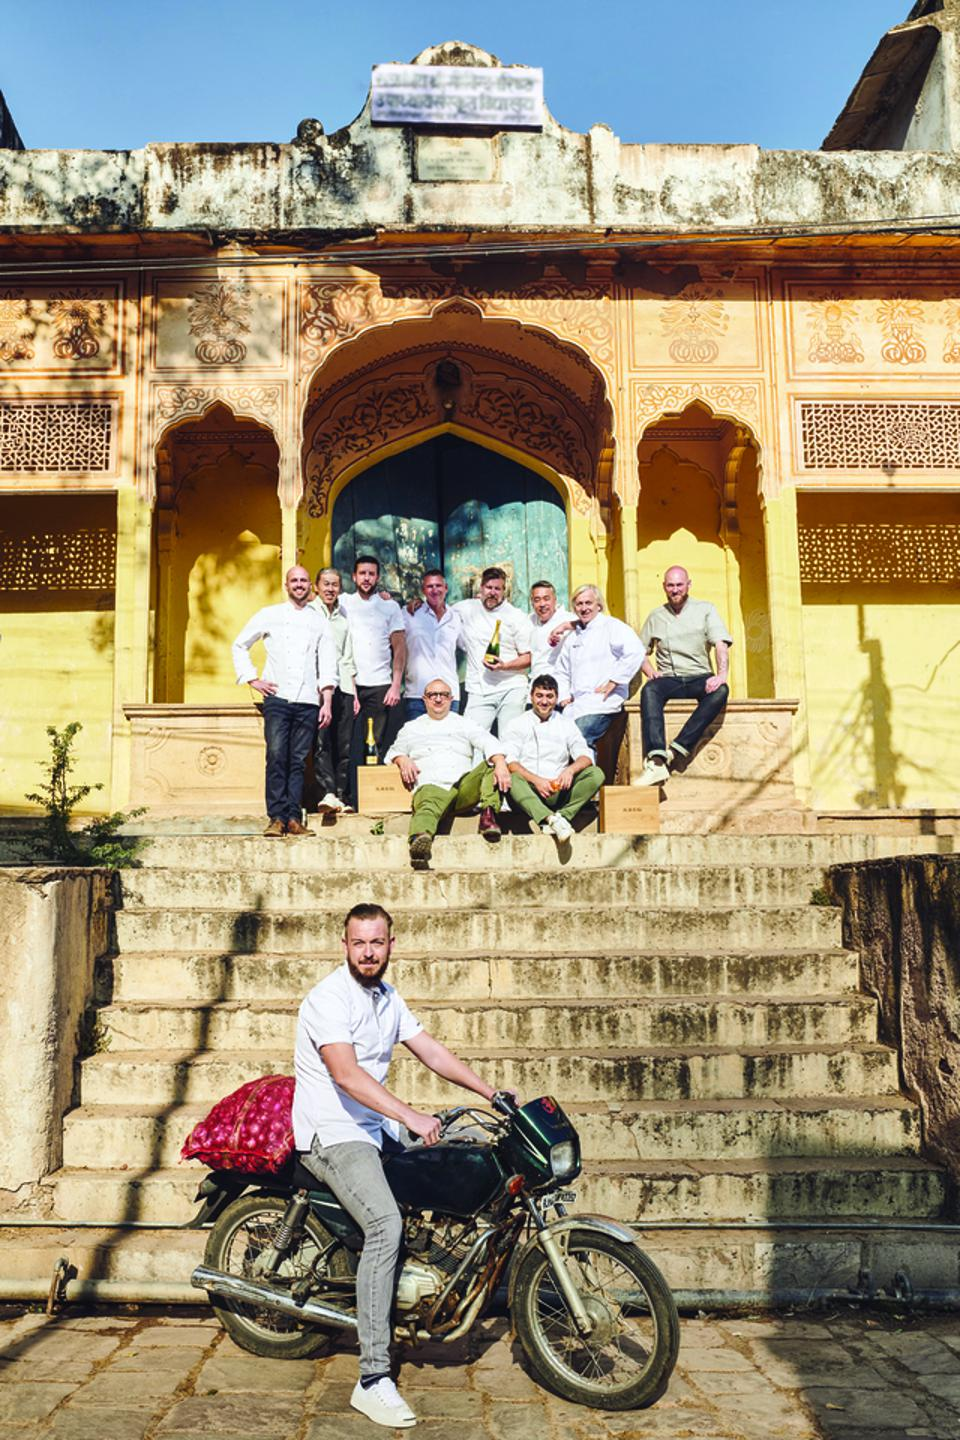 Krug Ambassade Chefs in Jaipur, India standing on stairs with one chef on a motorcycle.